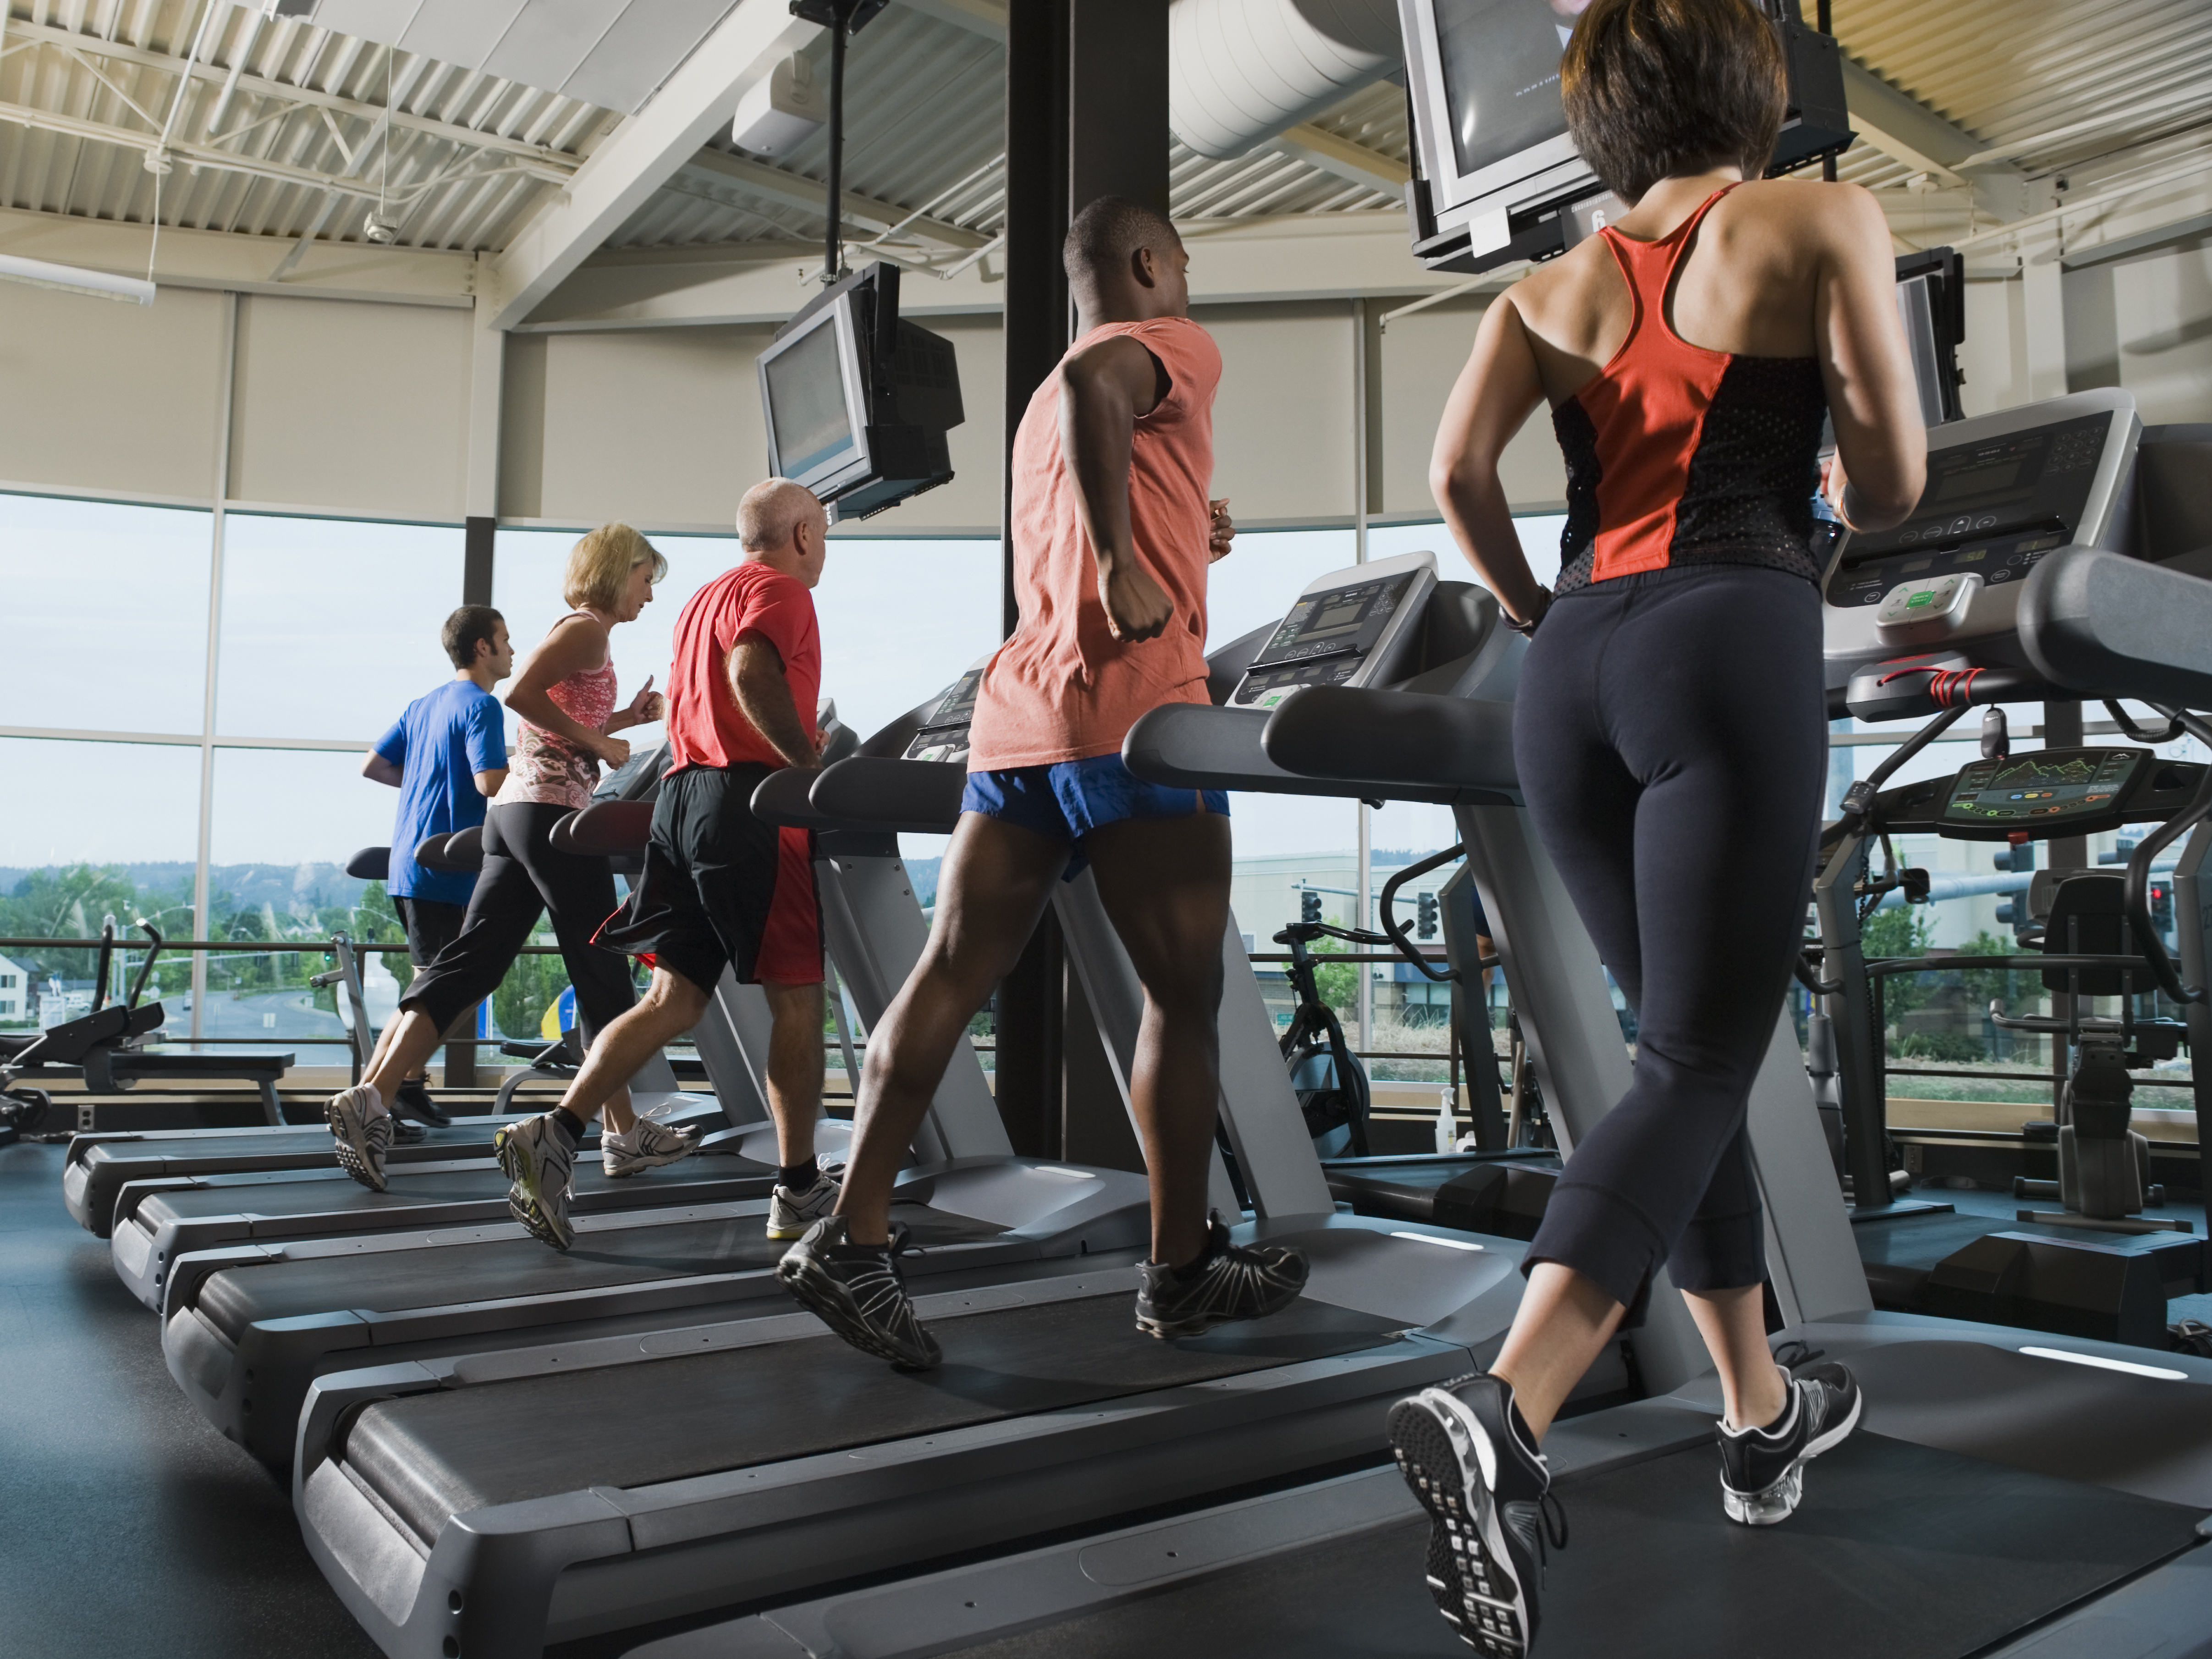 Row of people running on treadmills in gym